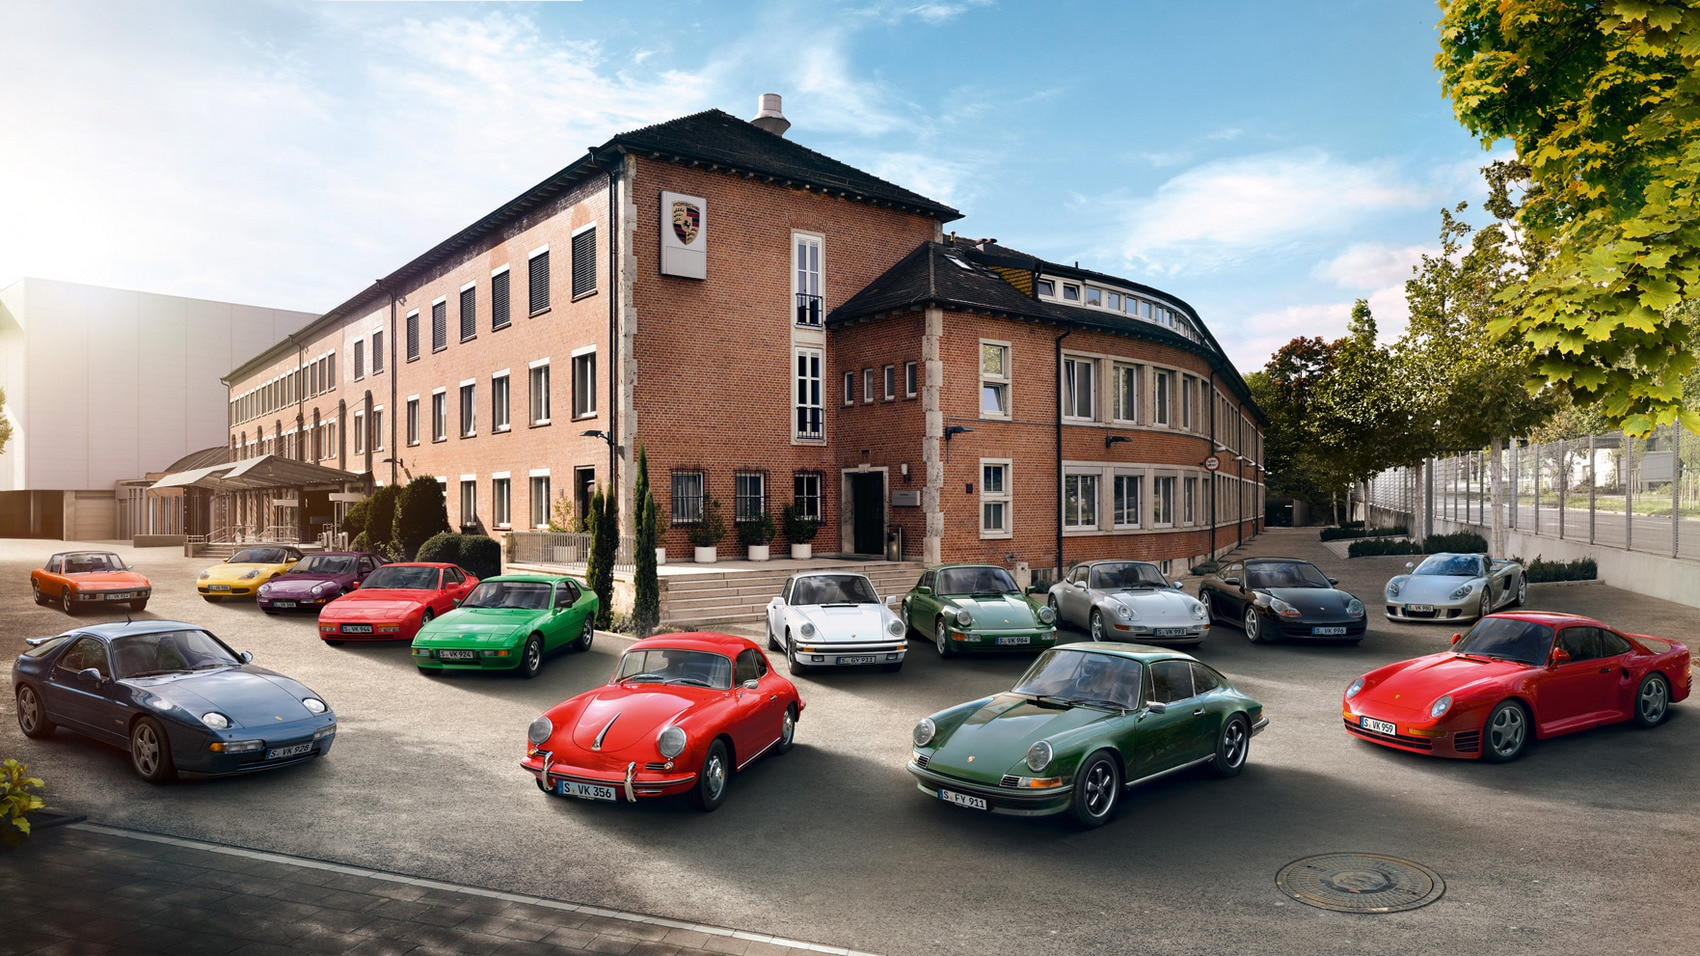 porsche-classic-vehicle-tracking-system-smartphone-app